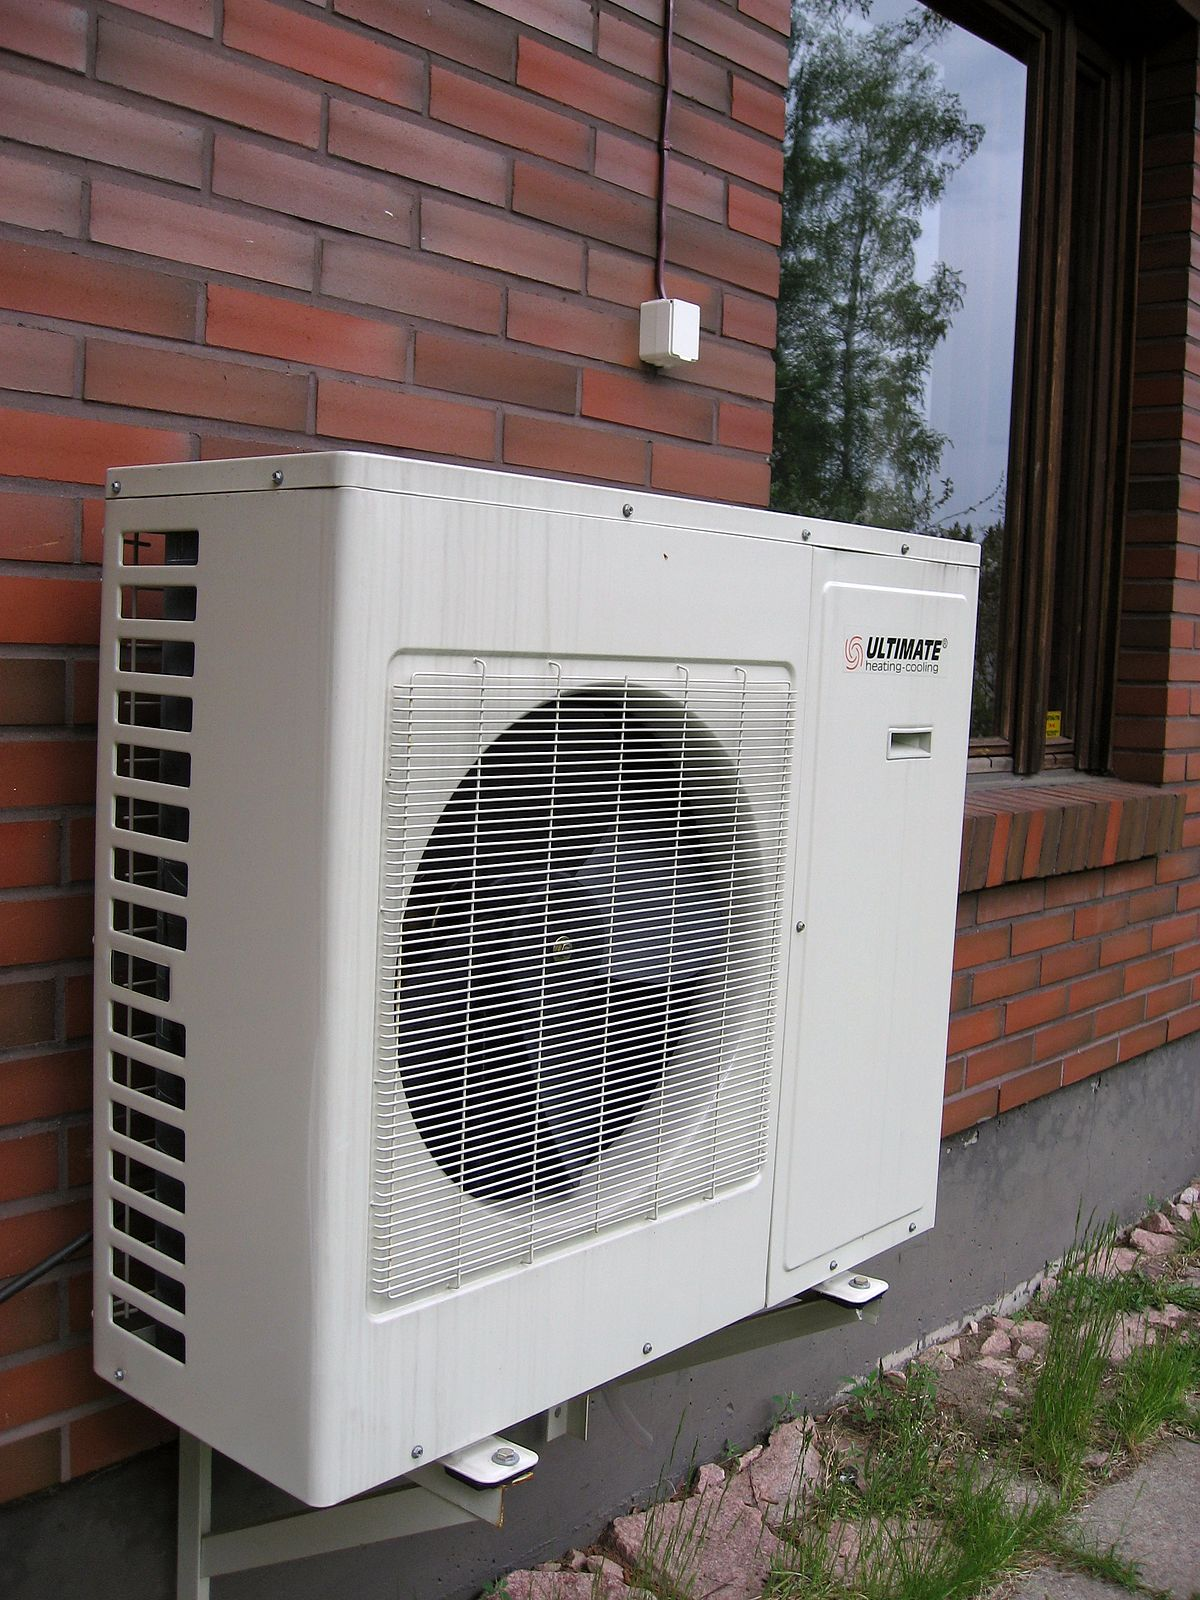 https://upload.wikimedia.org/wikipedia/commons/thumb/9/94/Outunit_of_heat_pump.jpg/1200px-Outunit_of_heat_pump.jpg